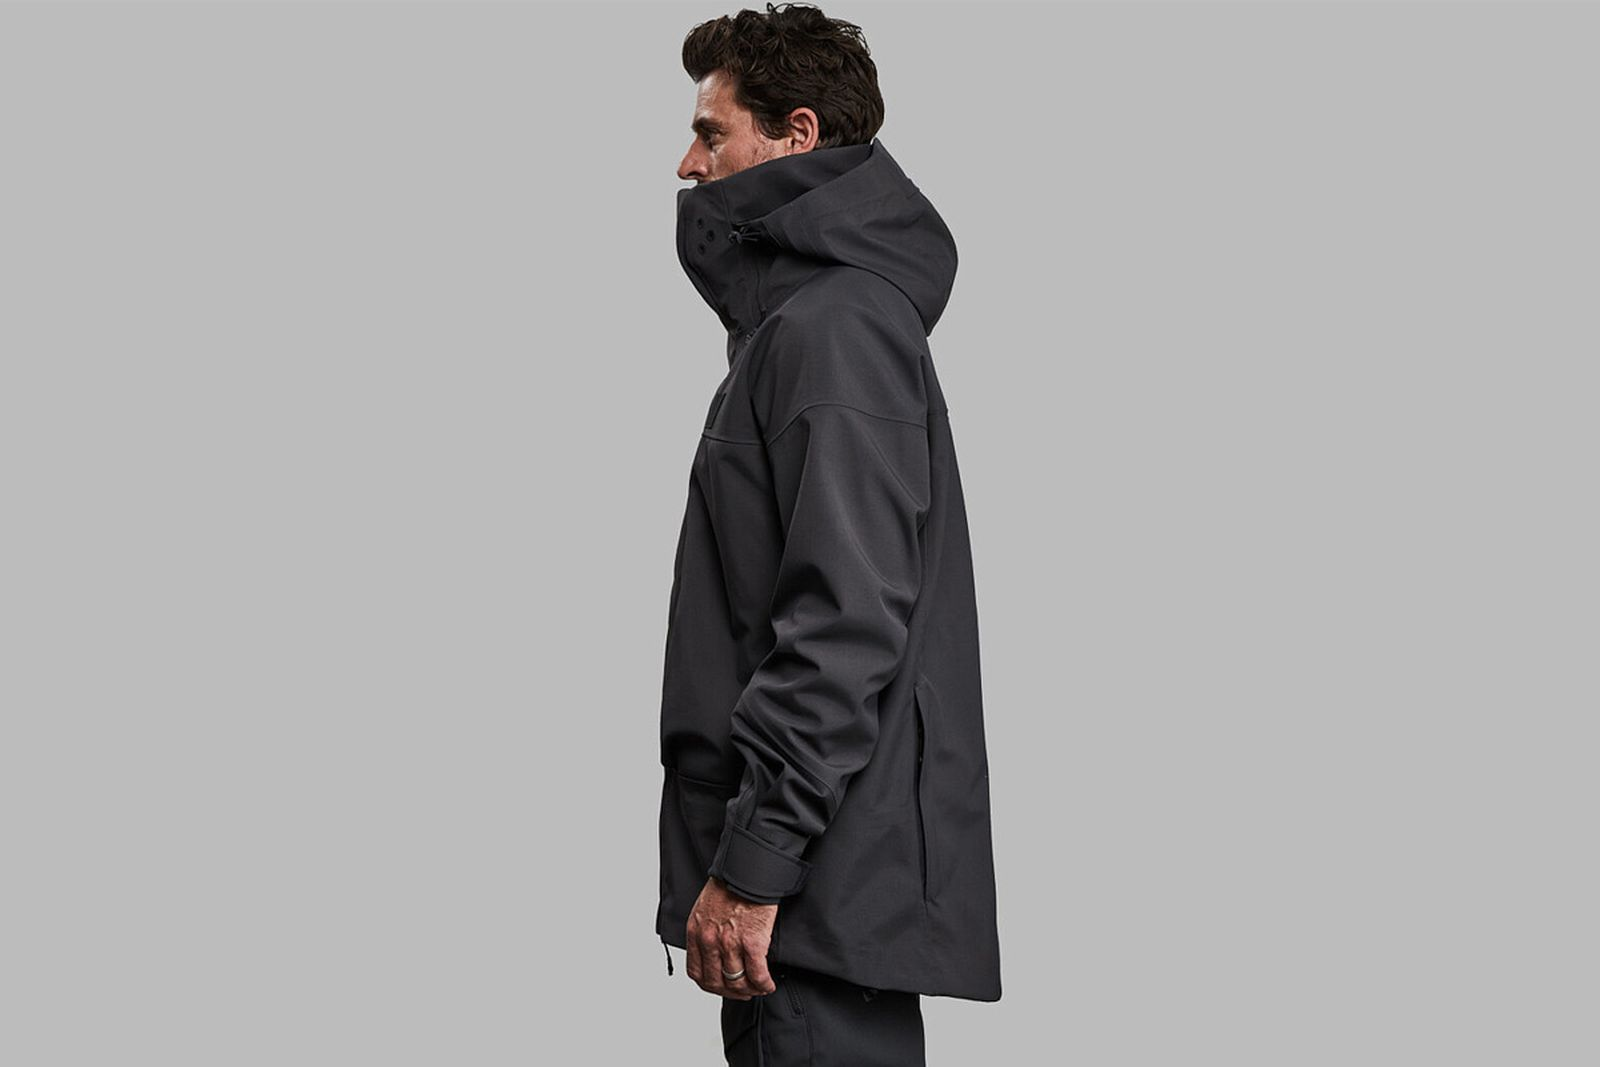 vollebak-100-year-jacket-buy-here-02